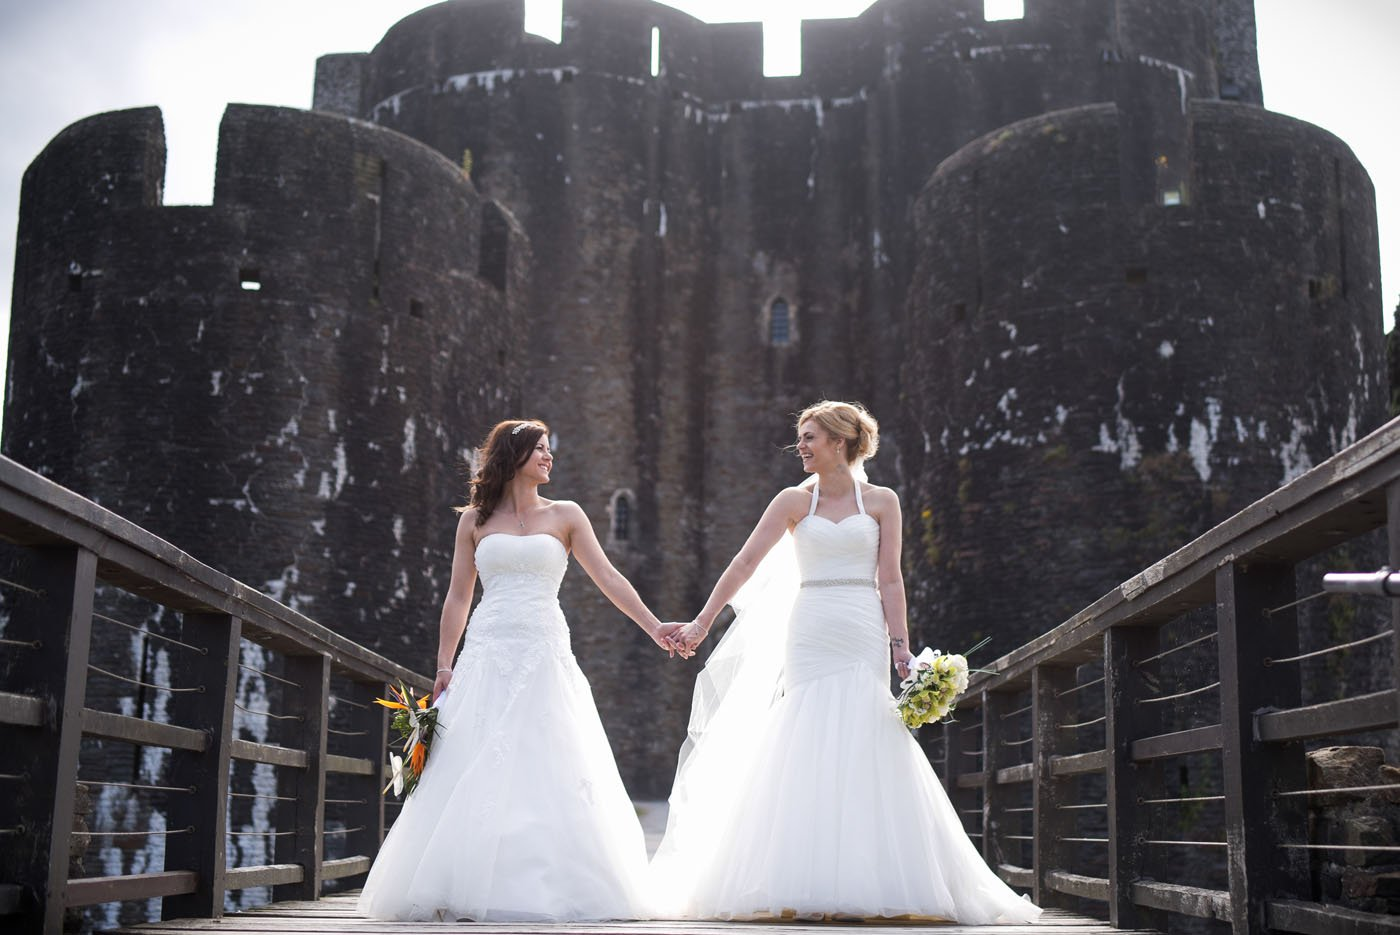 Two brides stand on a bride holding hands at Caerphilly Castle